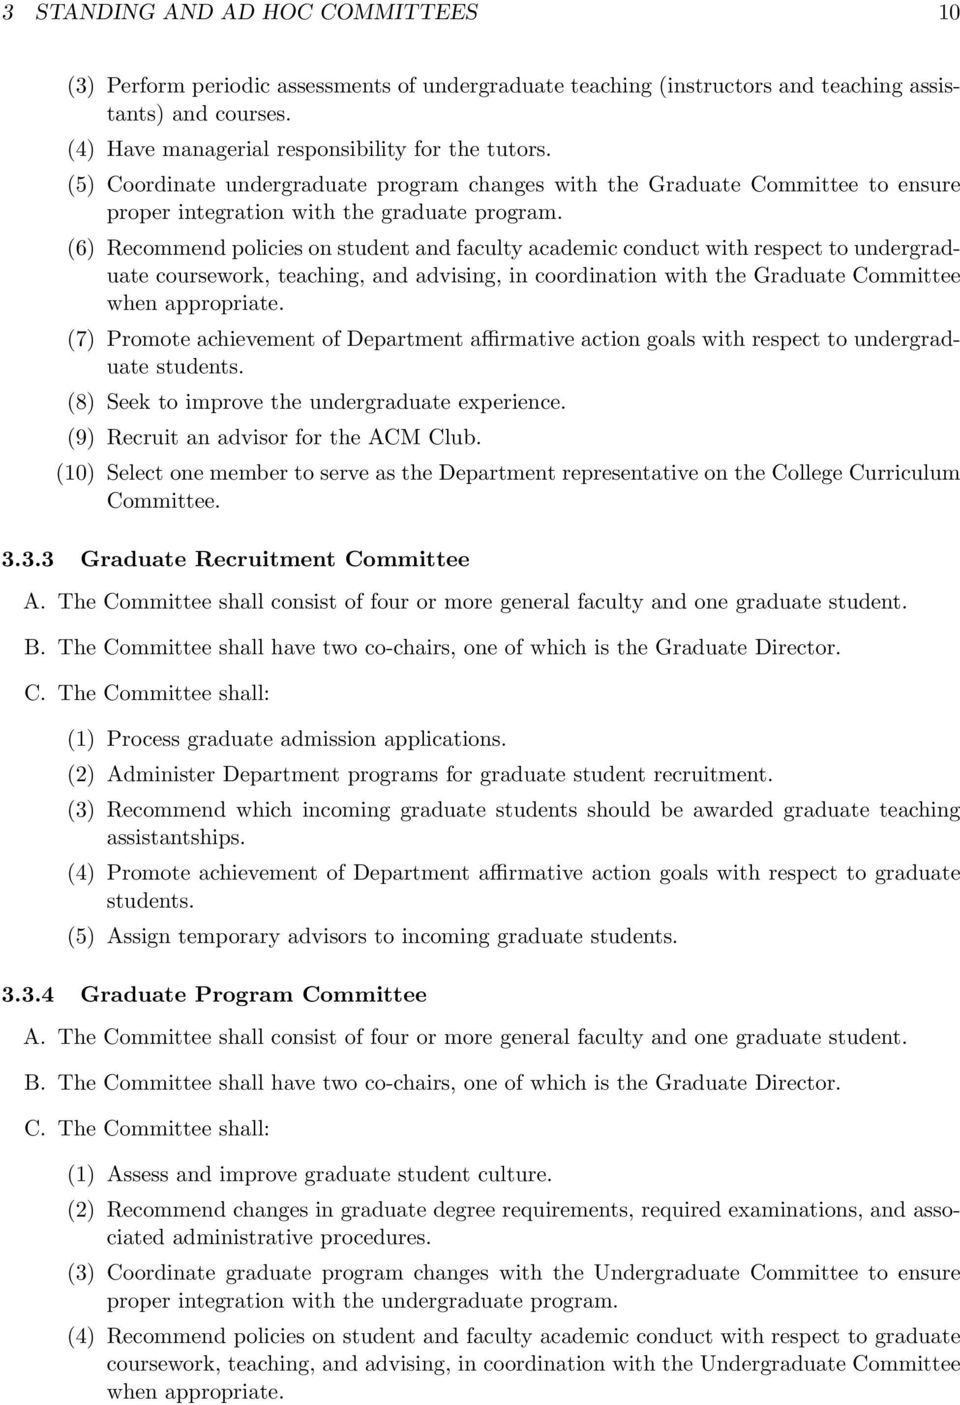 (6) Recommend policies on student and faculty academic conduct with respect to undergraduate coursework, teaching, and advising, in coordination with the Graduate Committee when appropriate.